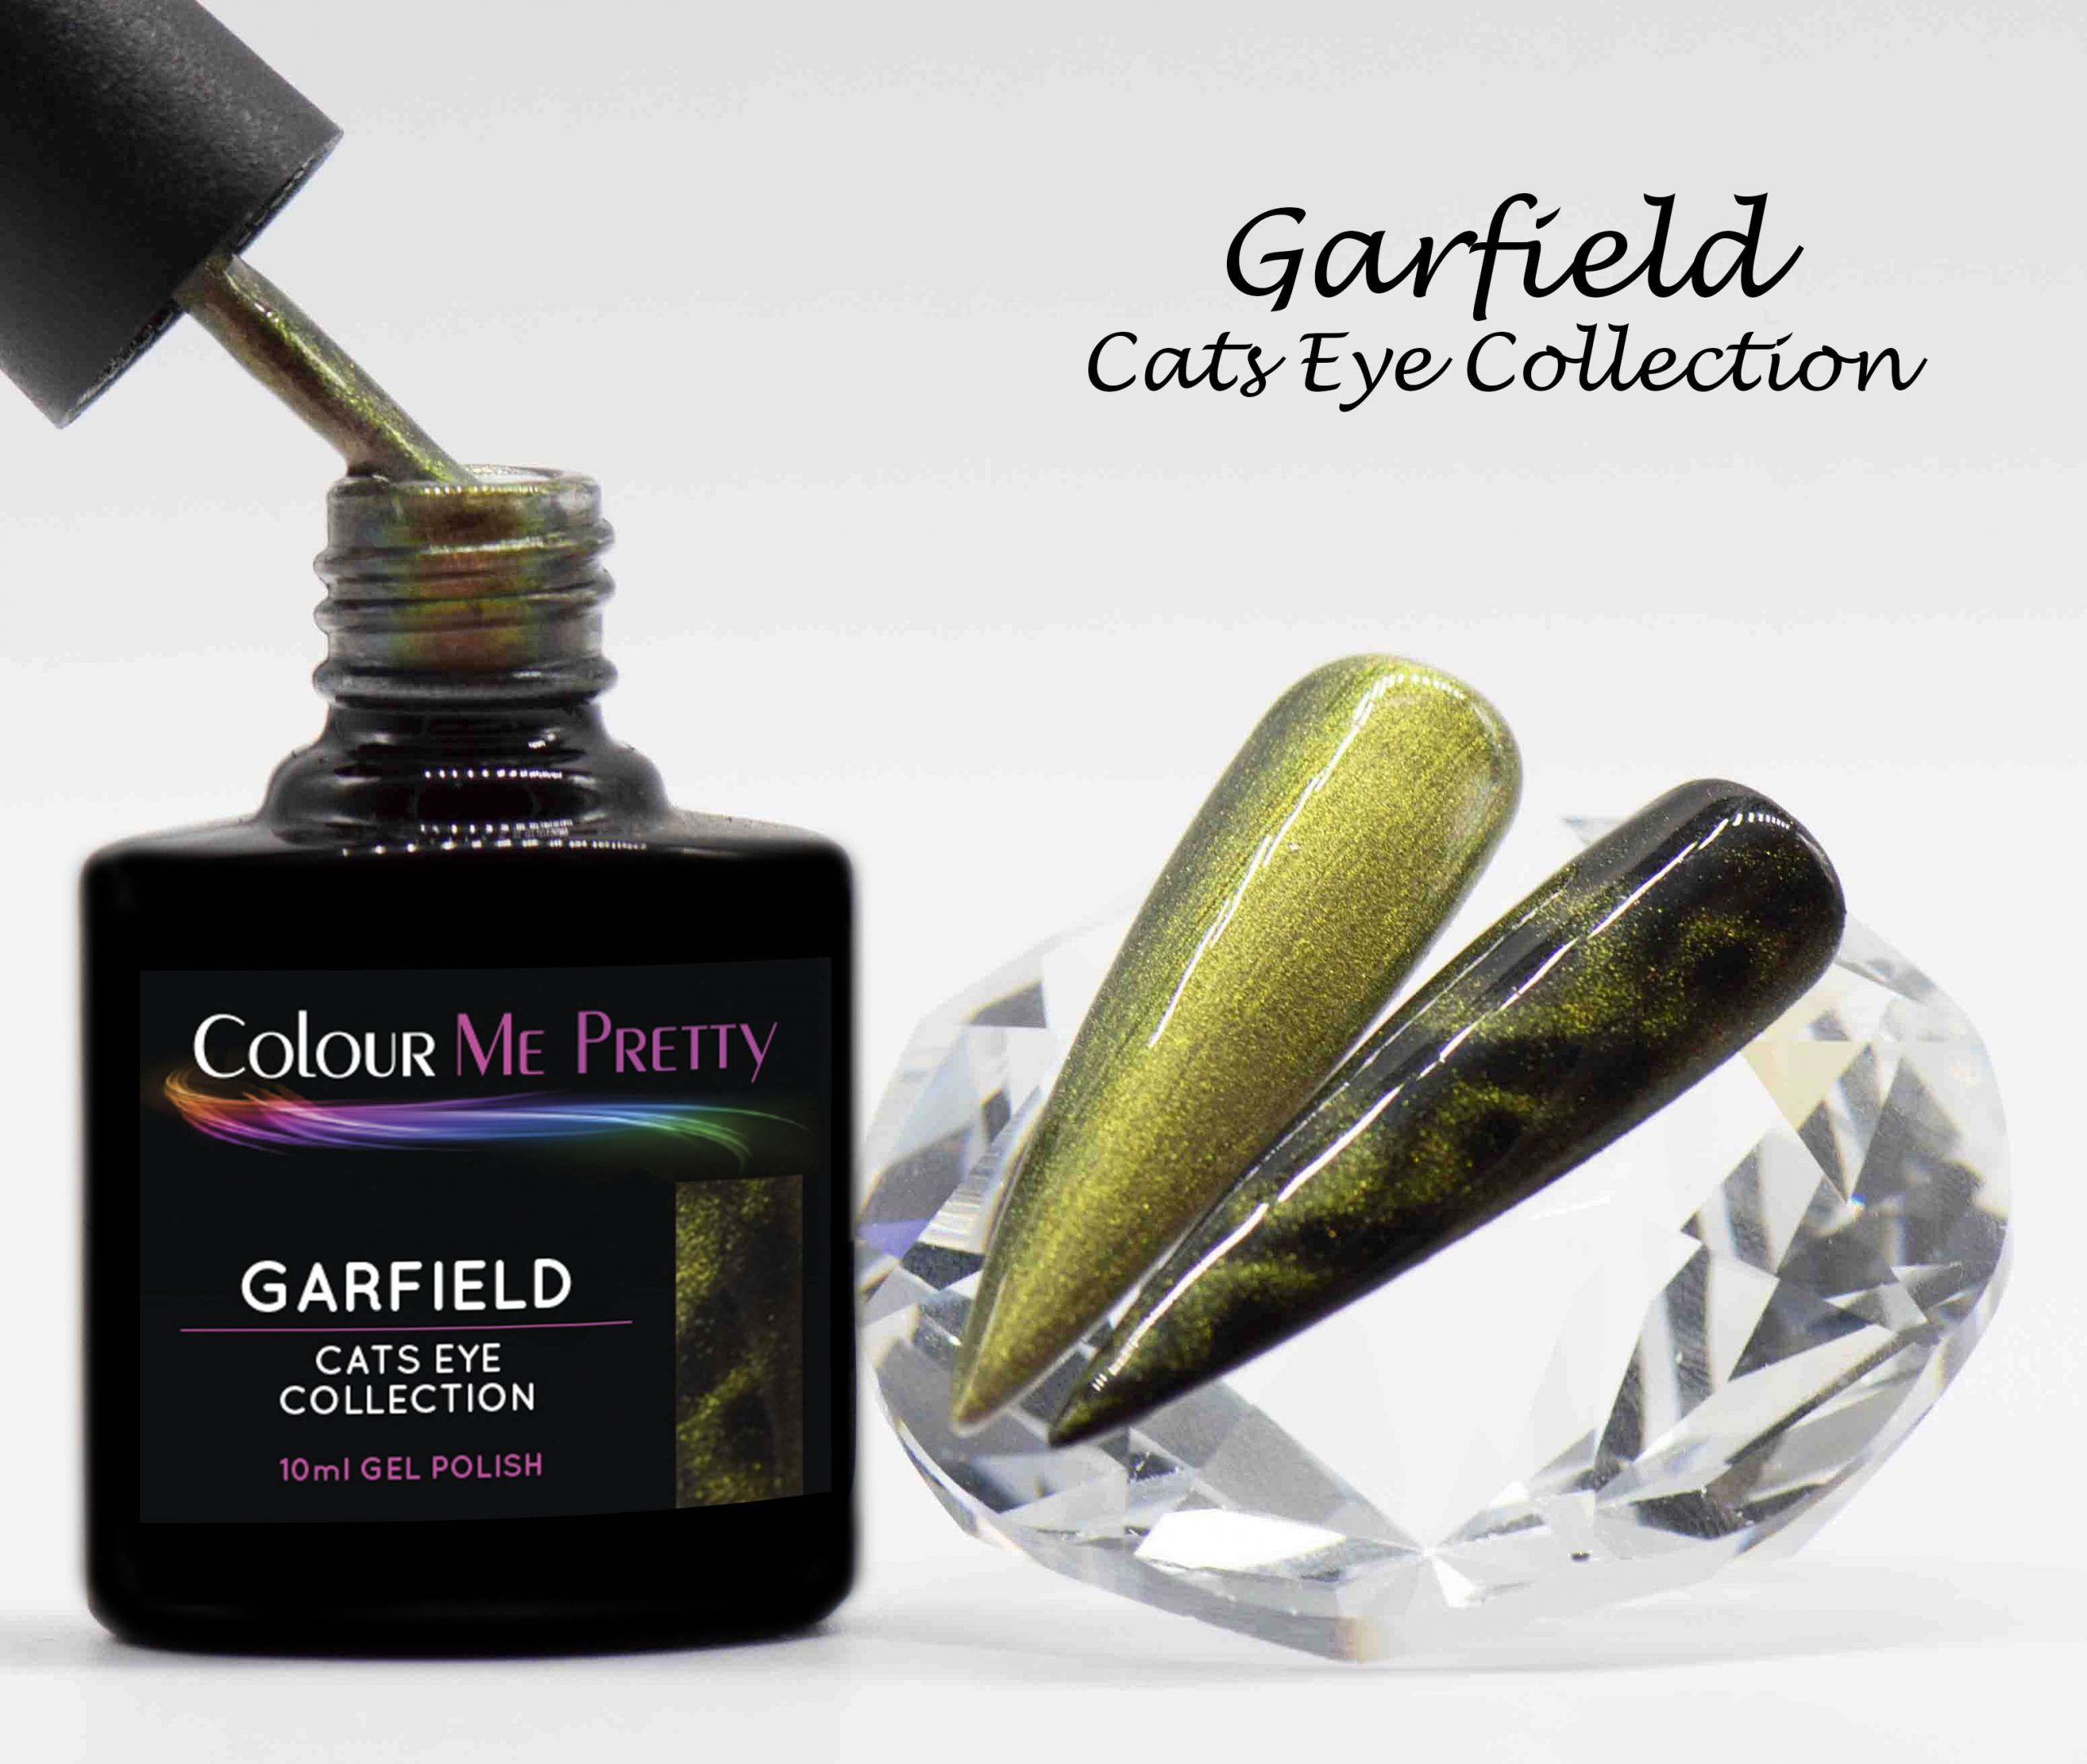 Cats Eye Garfield